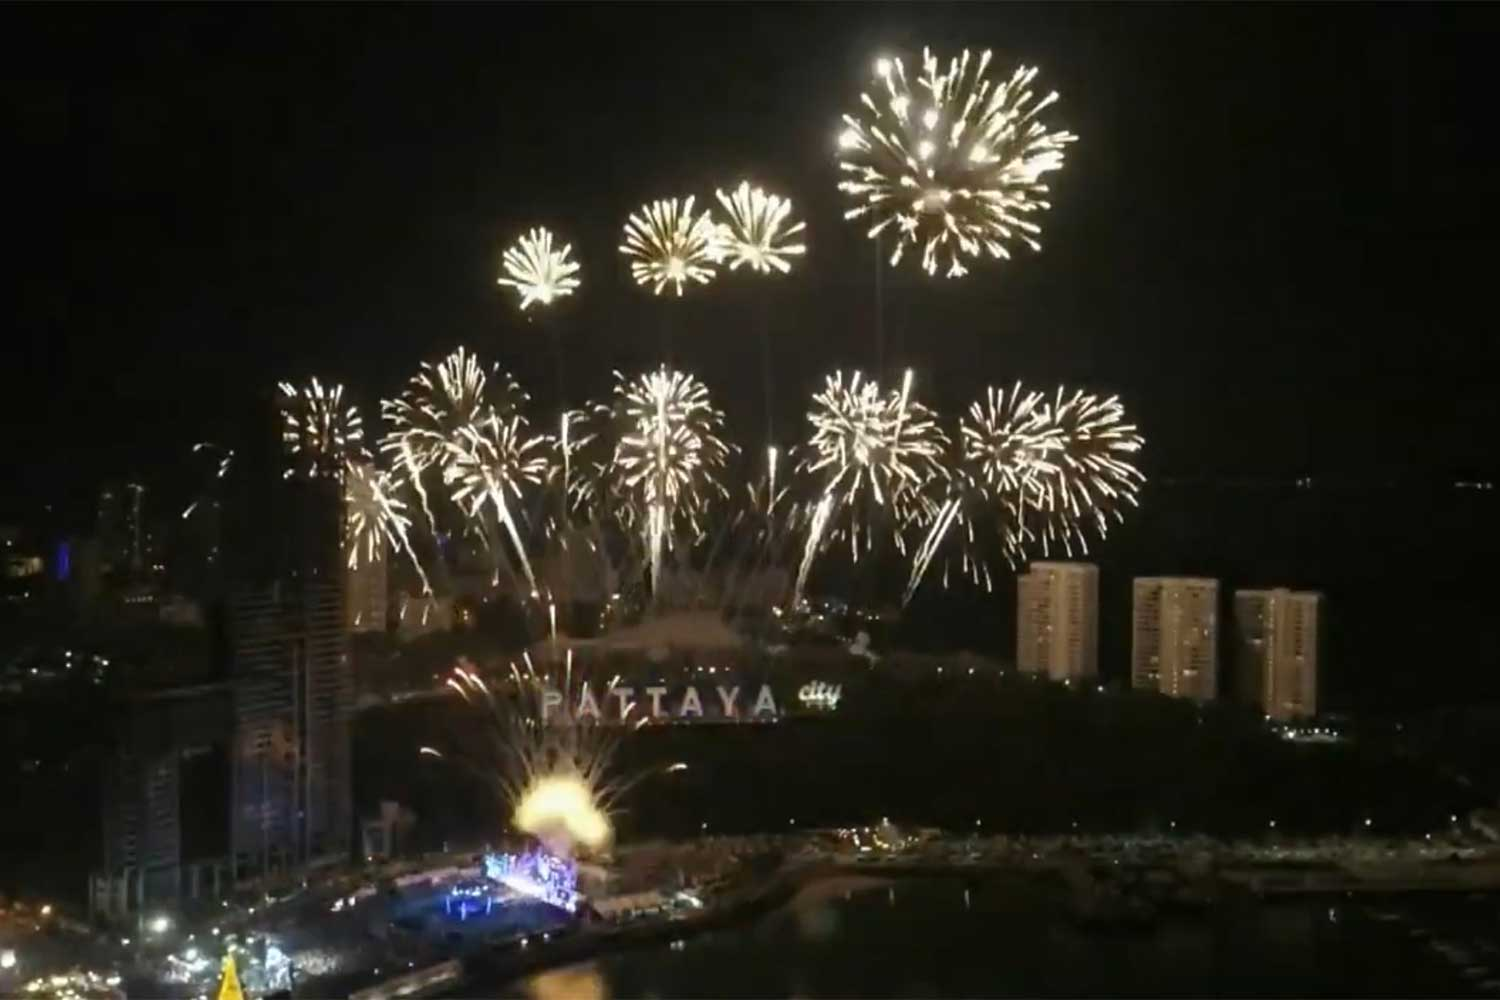 Part of last year's celebration. This year's Pattaya Countdown has been cancelled due to concerns over a new wave of Covid-19.  (Photo: Chaiyot Pupattanapong)